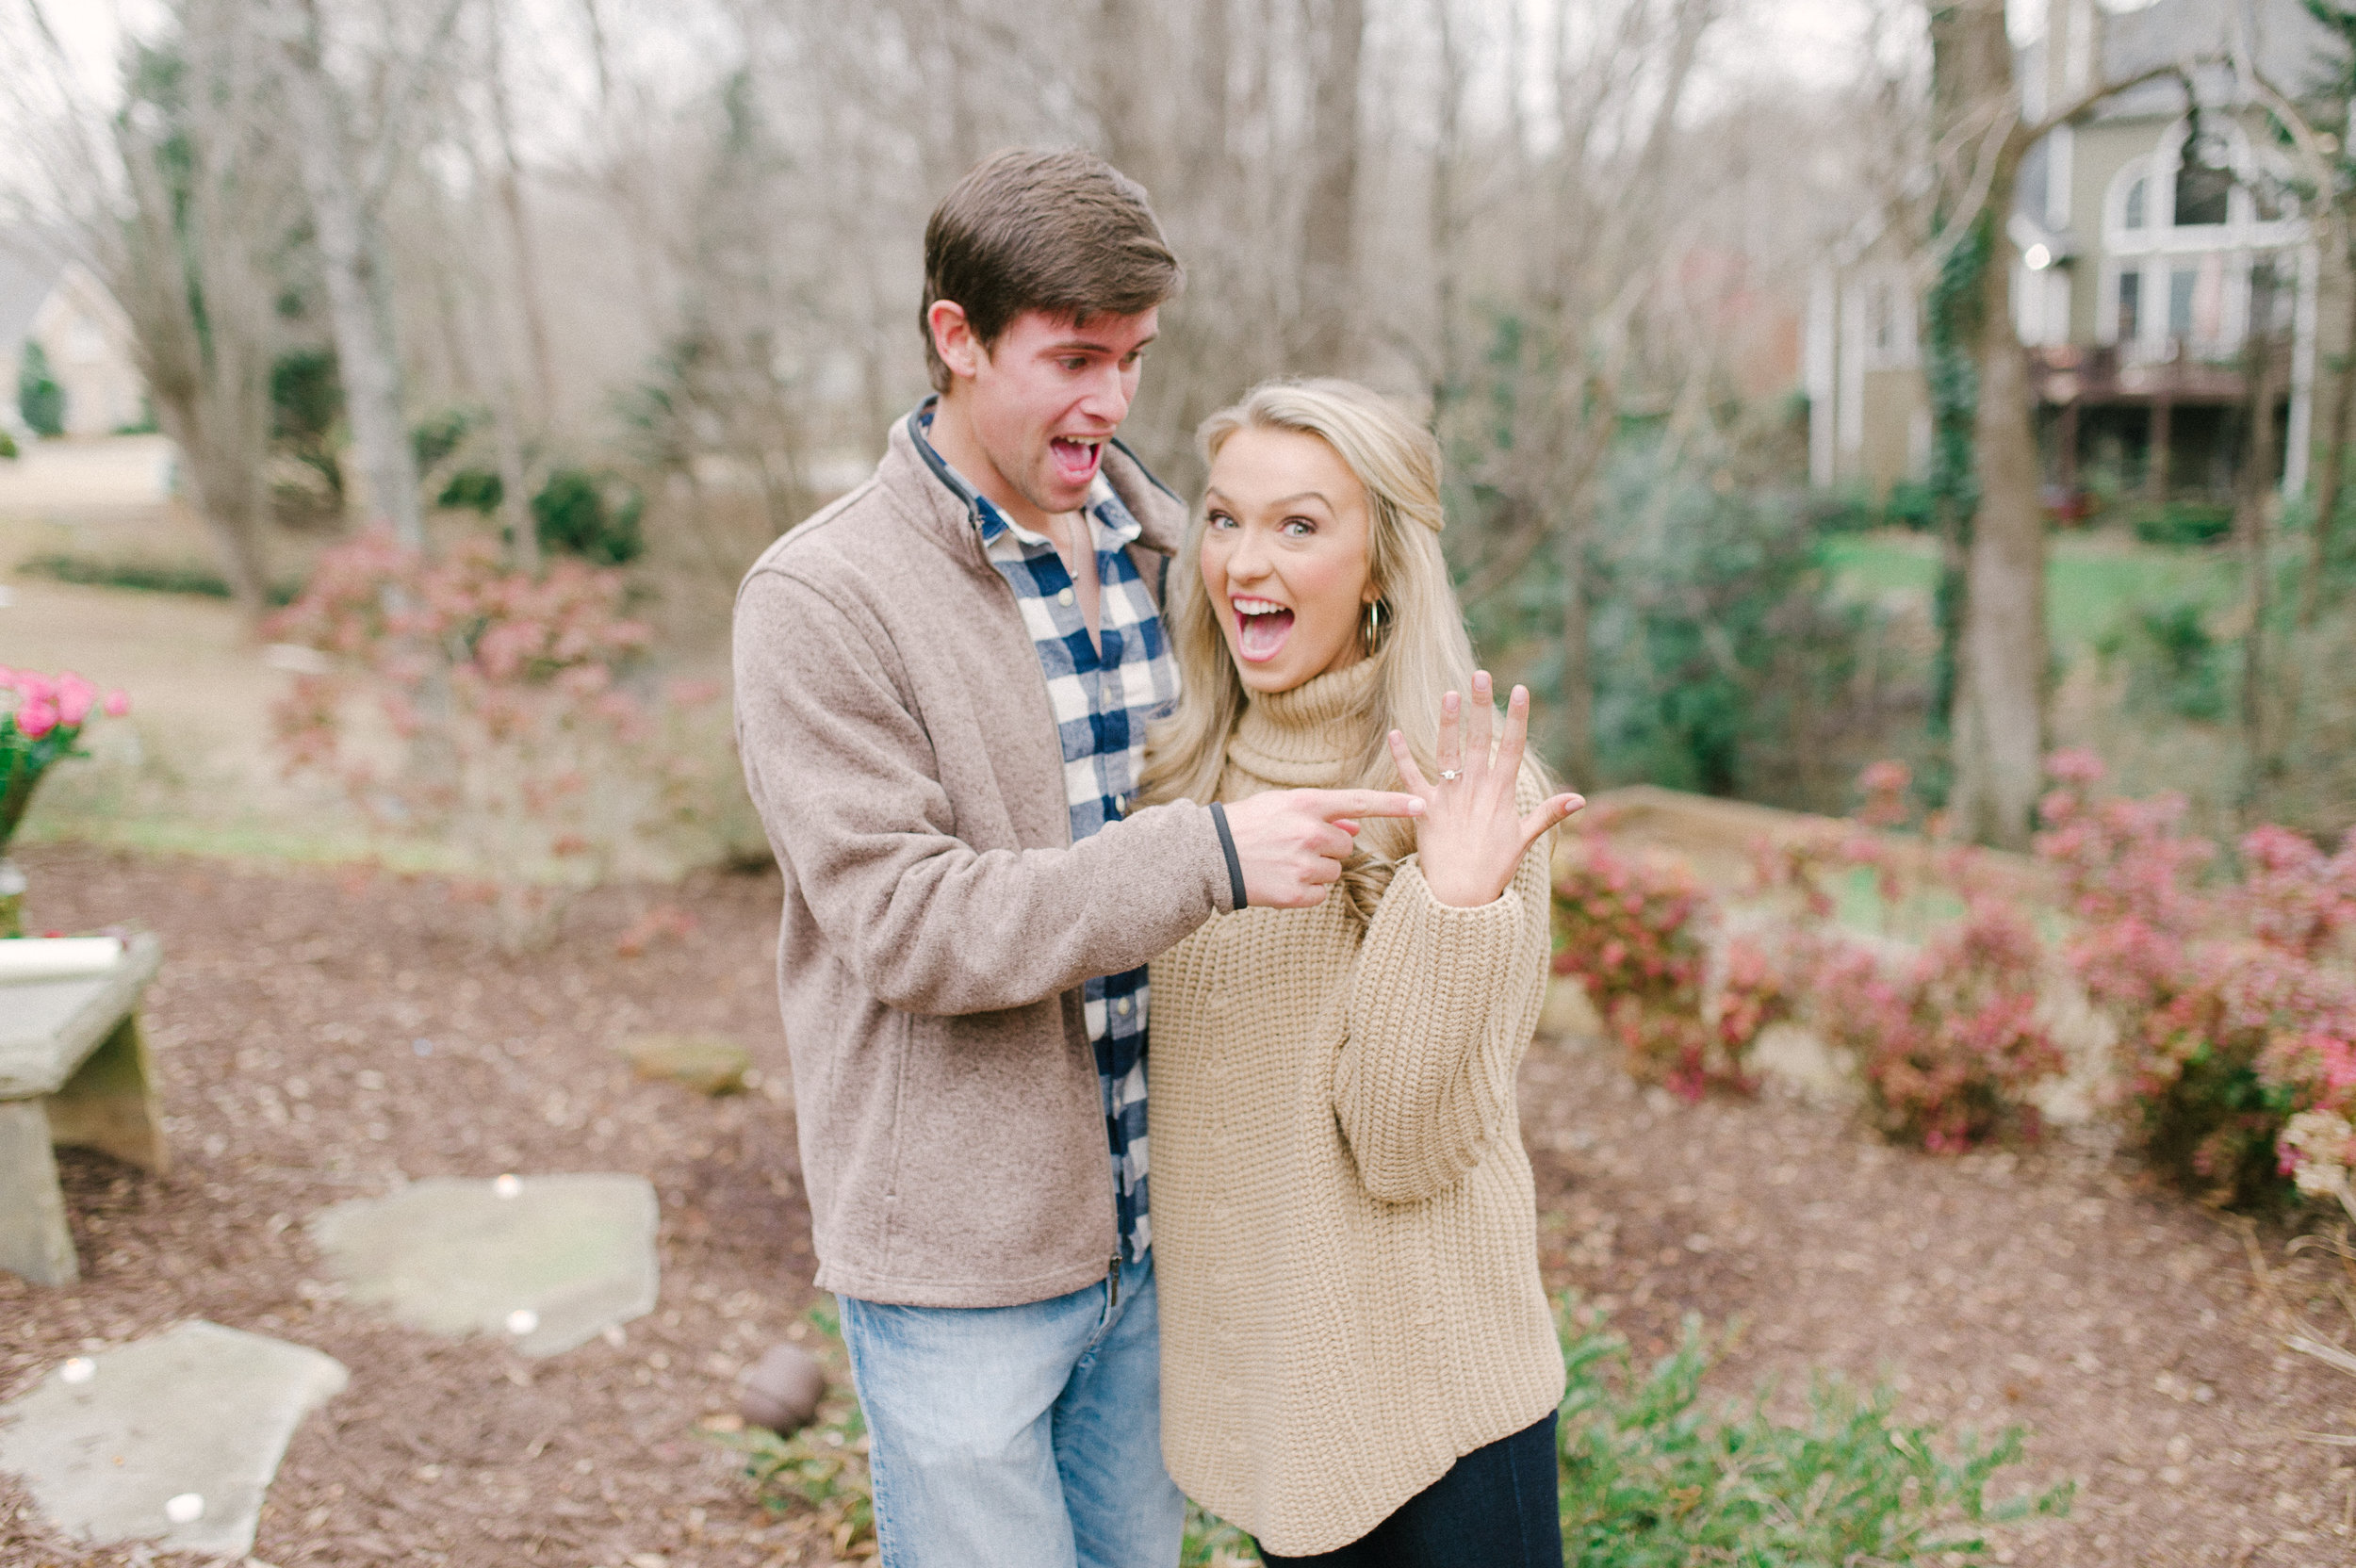 Hannah-forsberg-engagement-proposal-photographer-atlanta-17.jpg